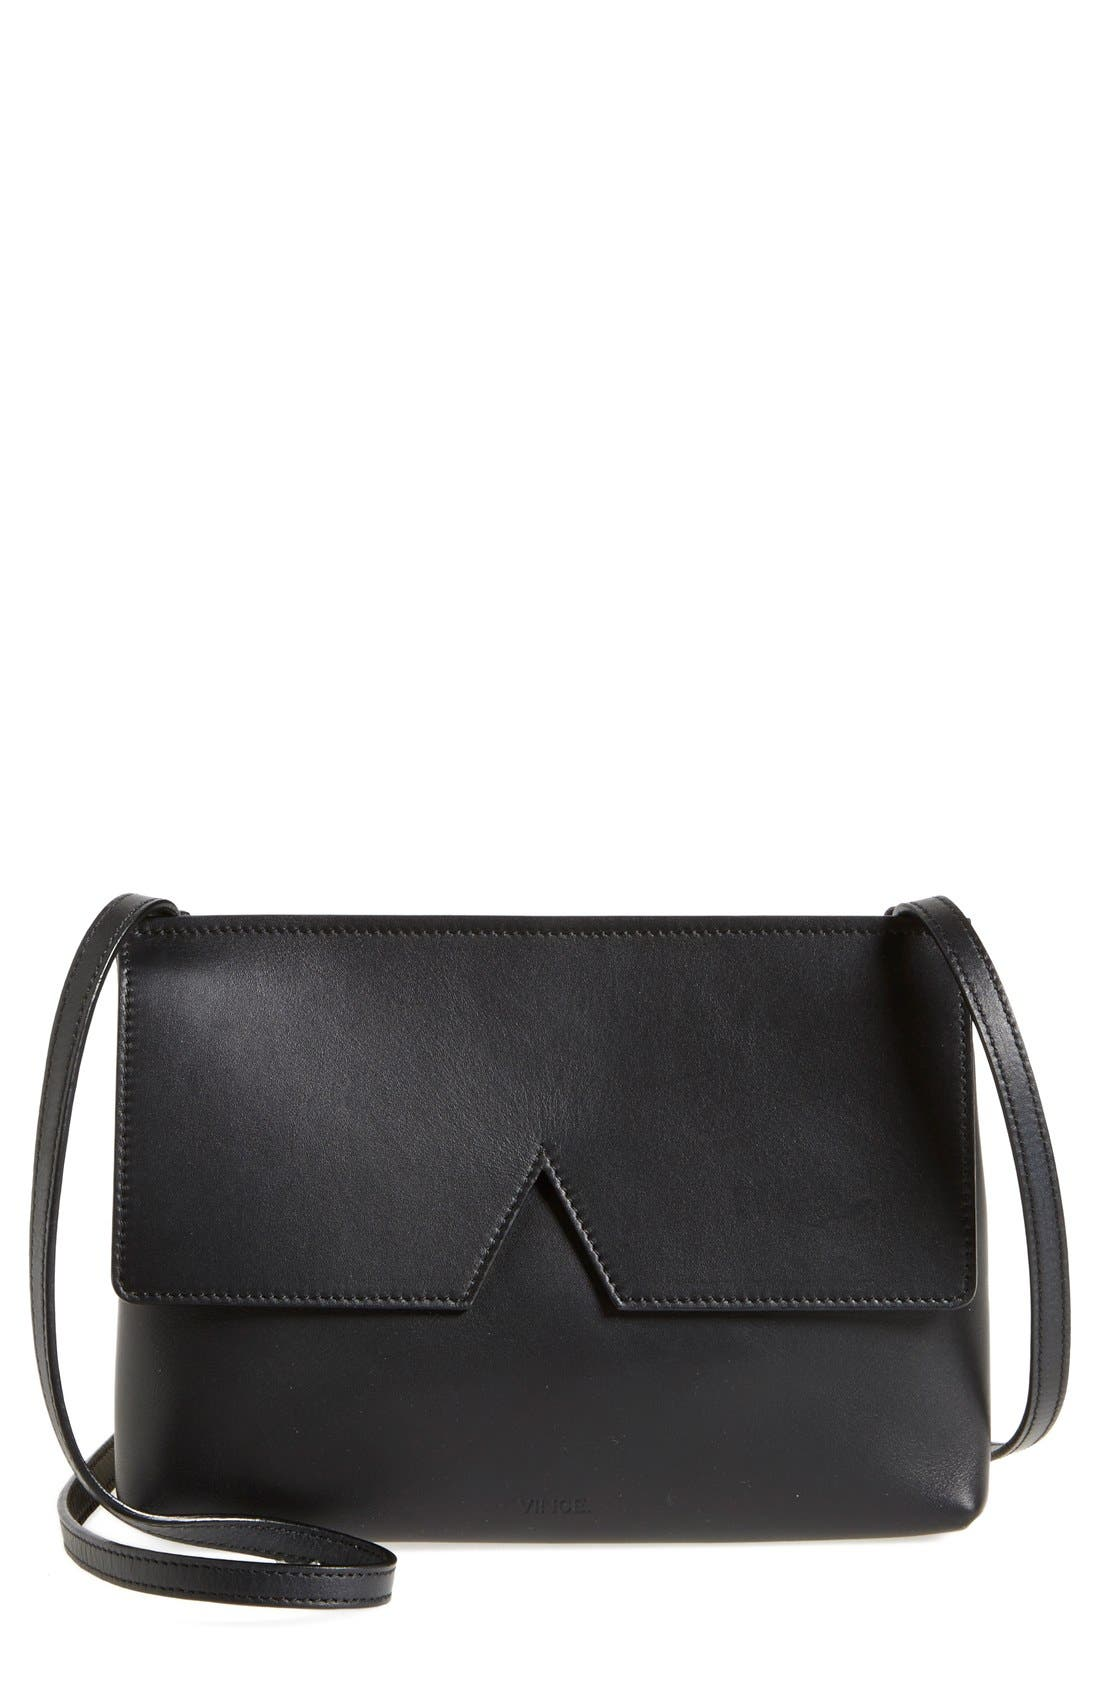 'Signature Collection - Small' Leather Crossbody Bag,                         Main,                         color, 001